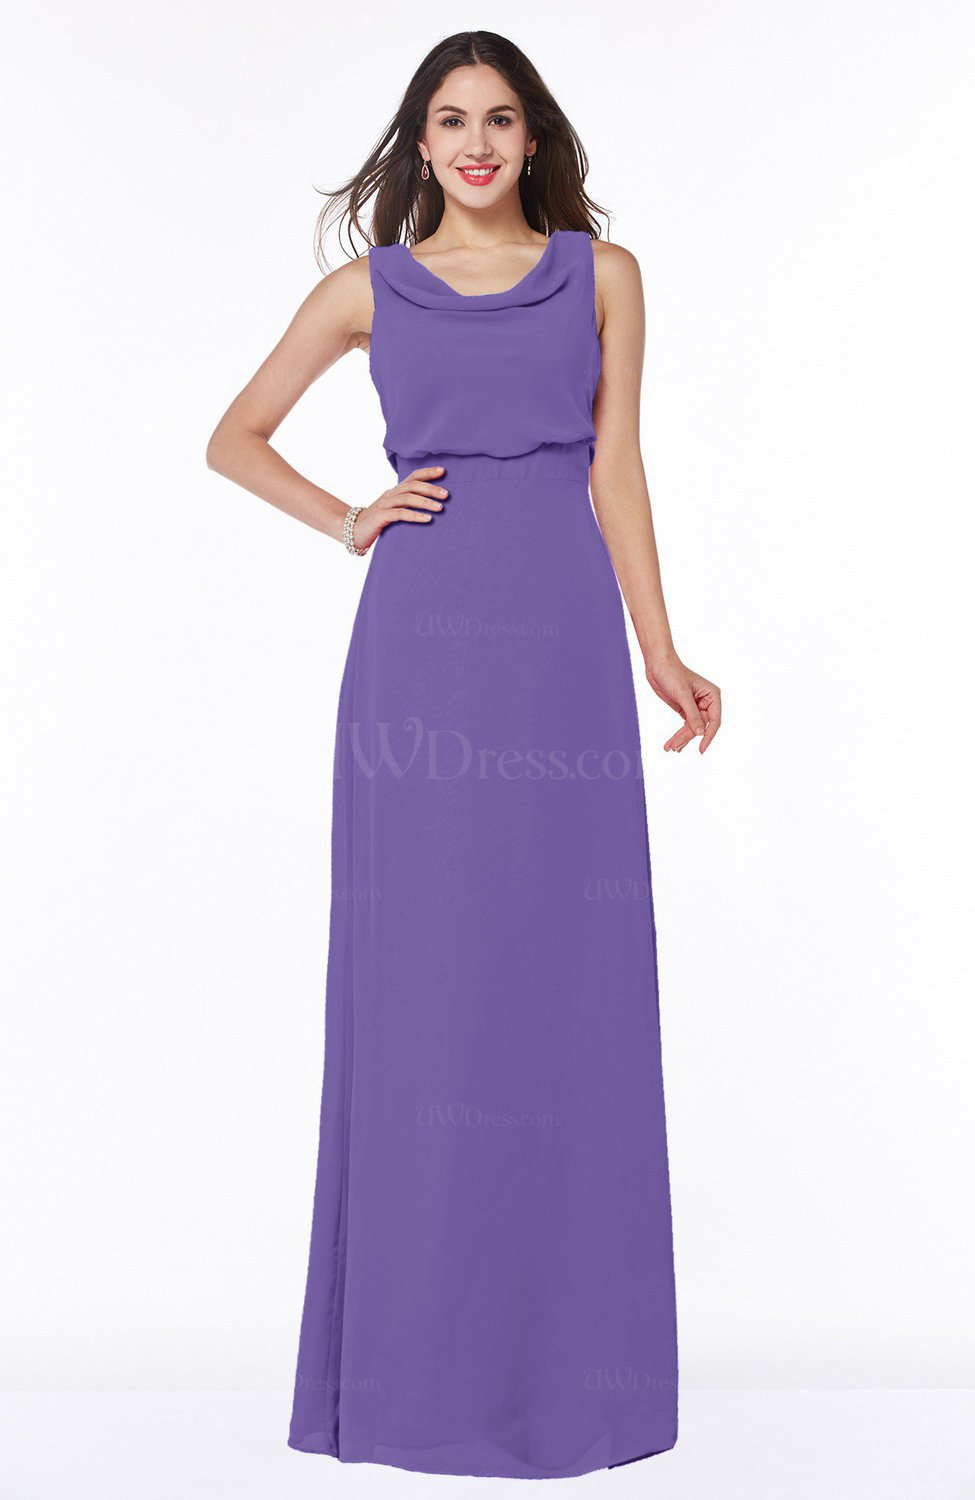 Modern lilac bridesmaid dresses modern lilac bridesmaid dresses 68 ombrellifo Images